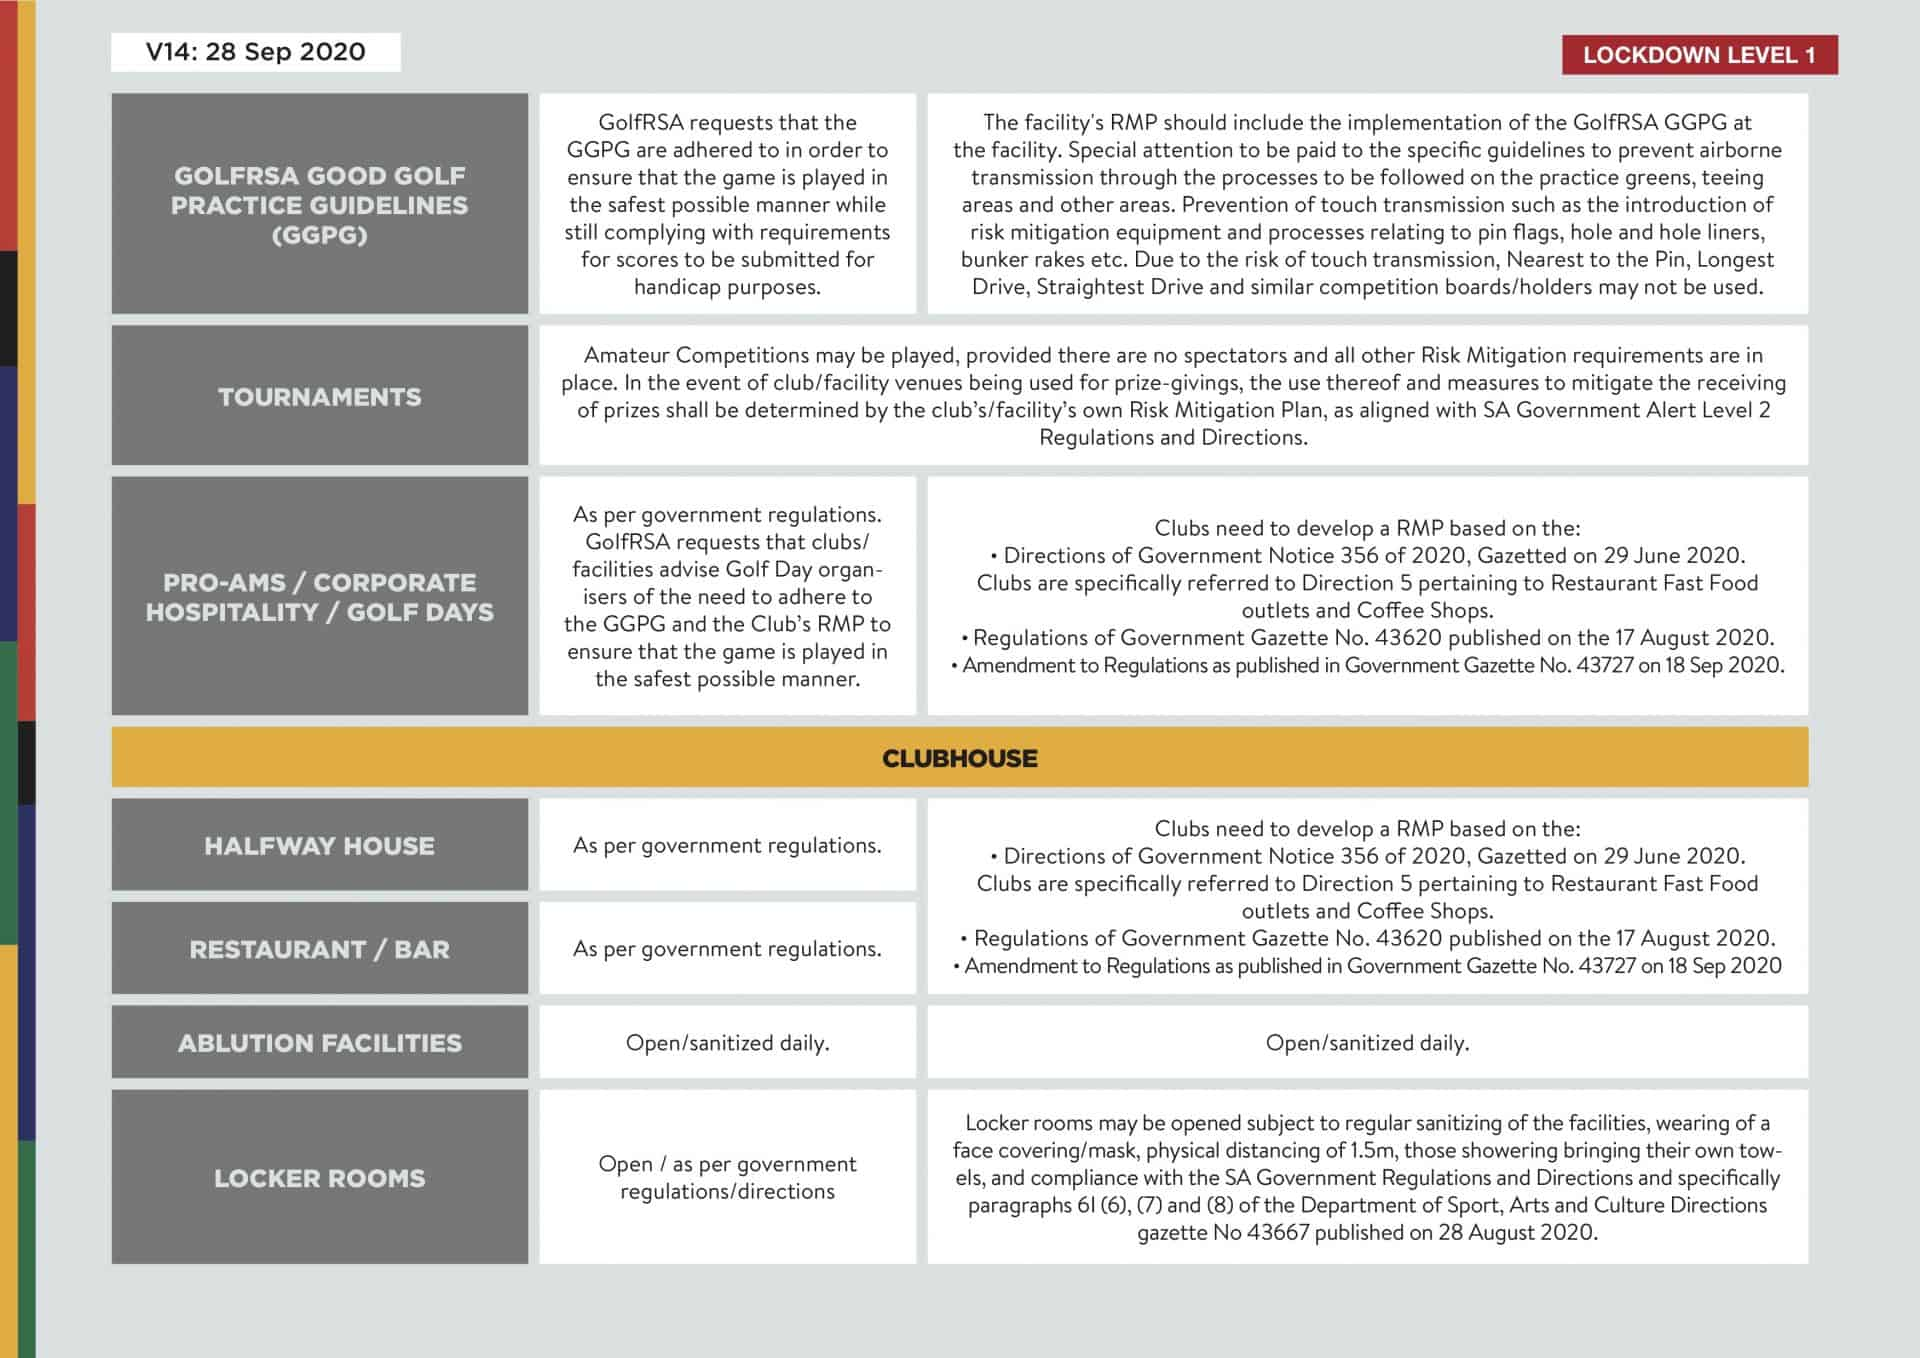 Consolidated Guidelines - Practice facilities V14 - 3